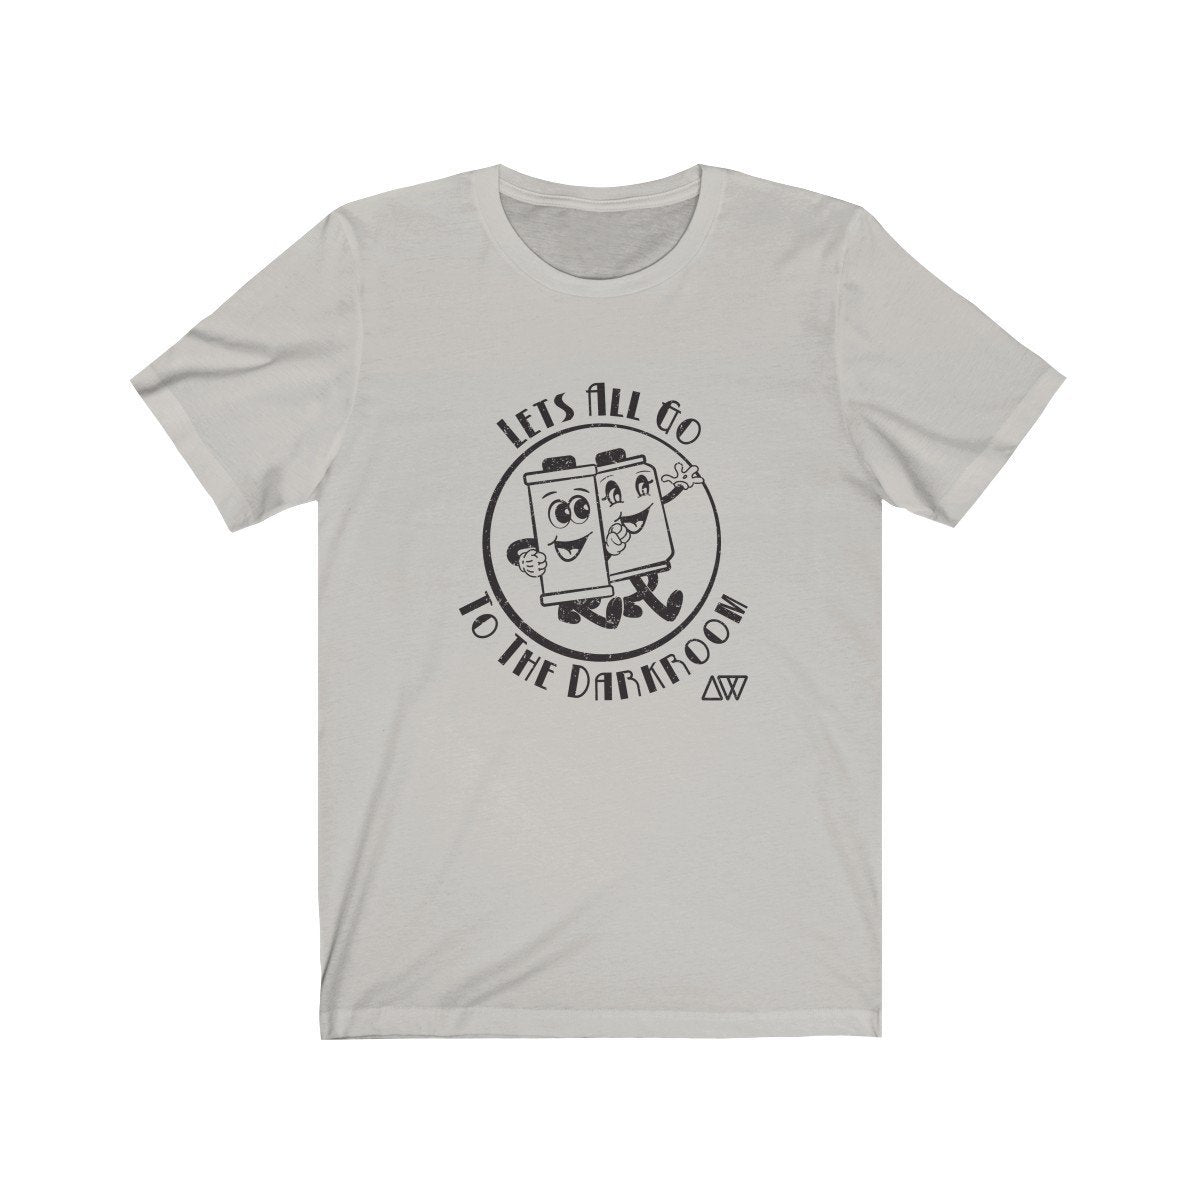 Men's T-Shirt for Film Photographers - Darkroom Magic - Analogue Wonderland